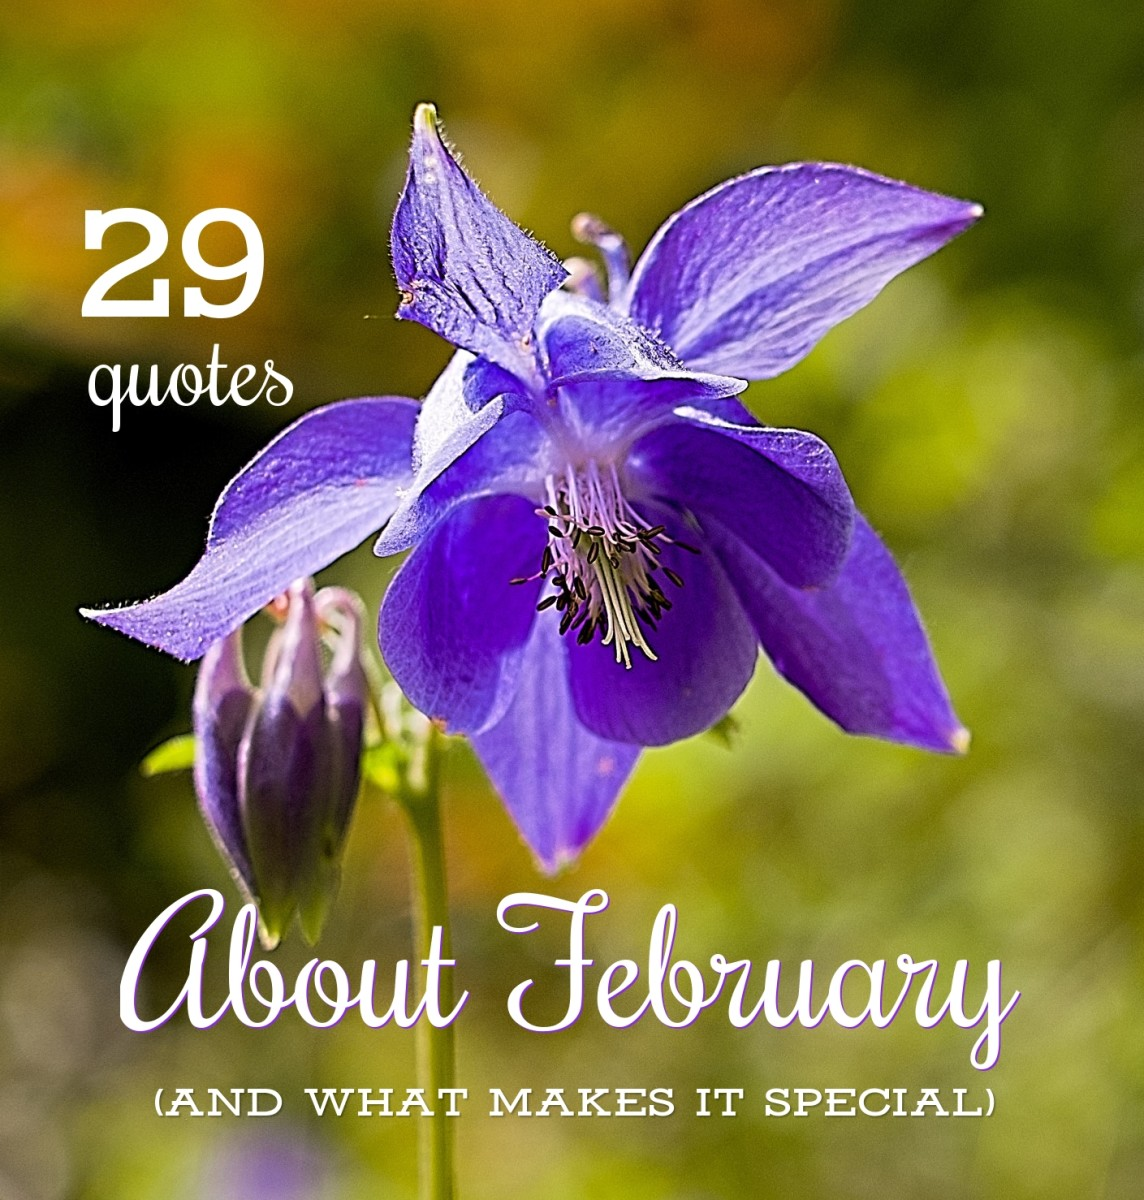 The violet is an official flower of the month of February.